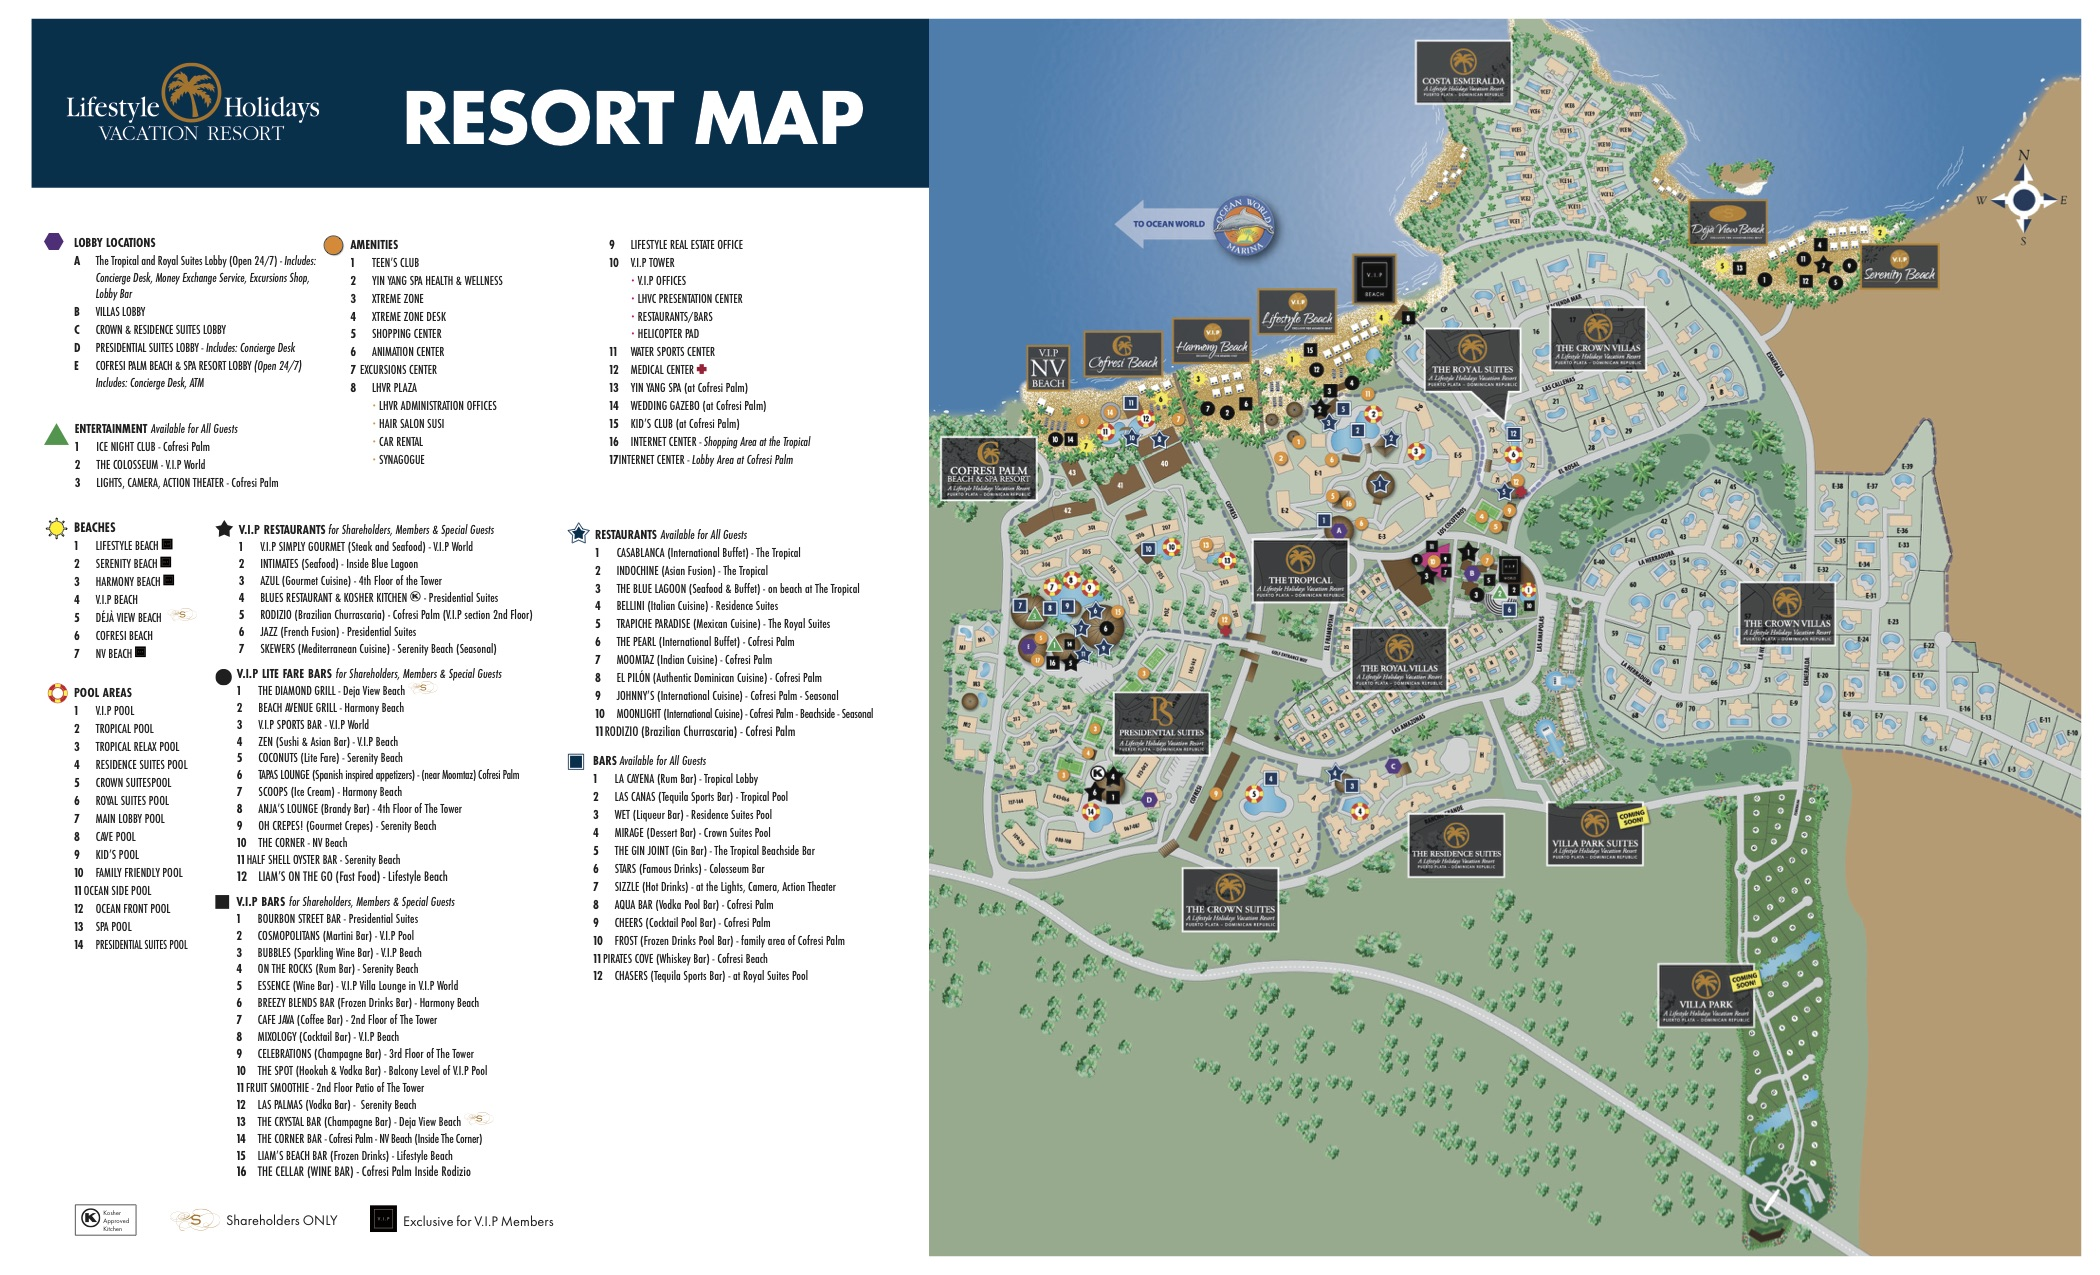 LHVResort_Map_Plata